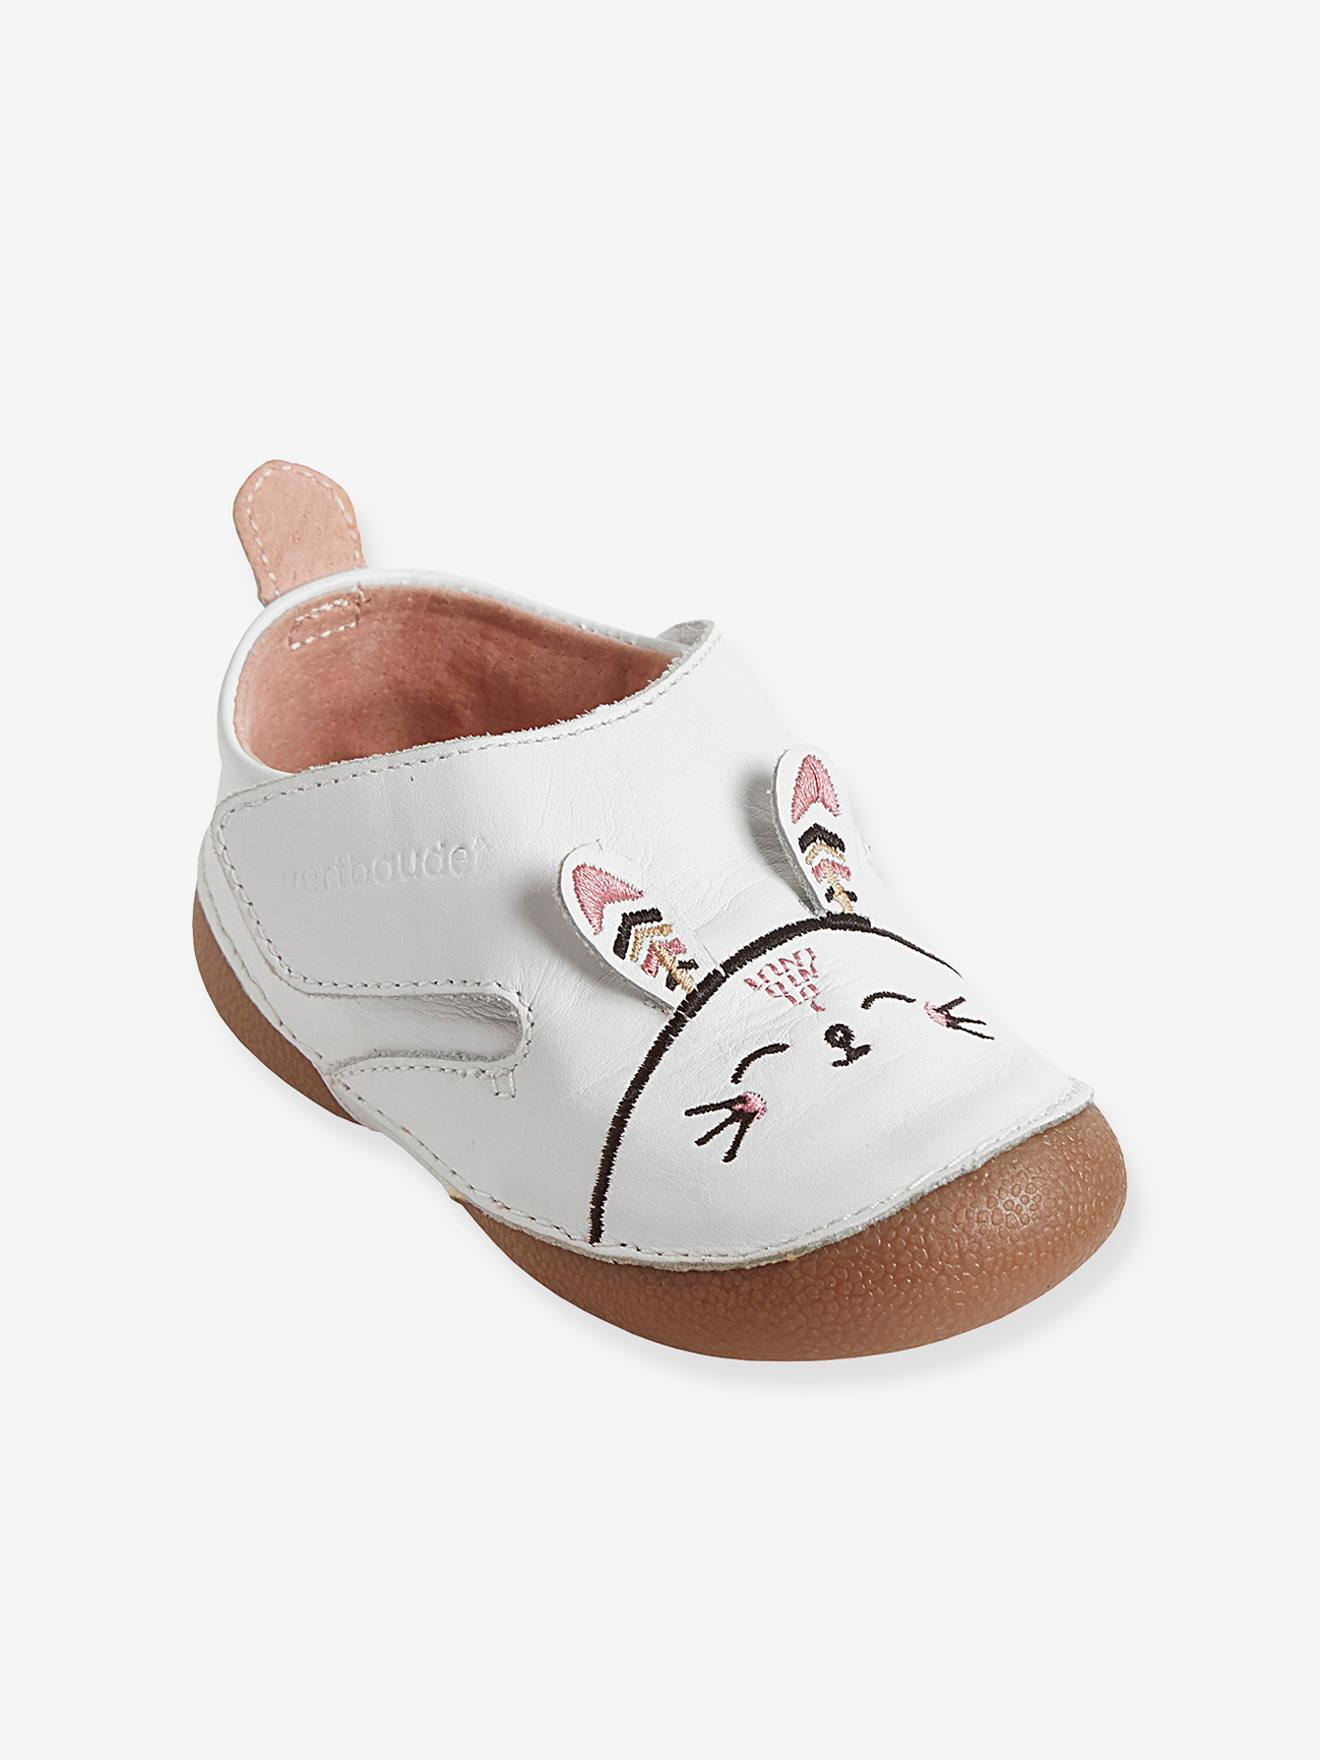 Baby Girls Non Slip Leather Slippers with Ears Shoes